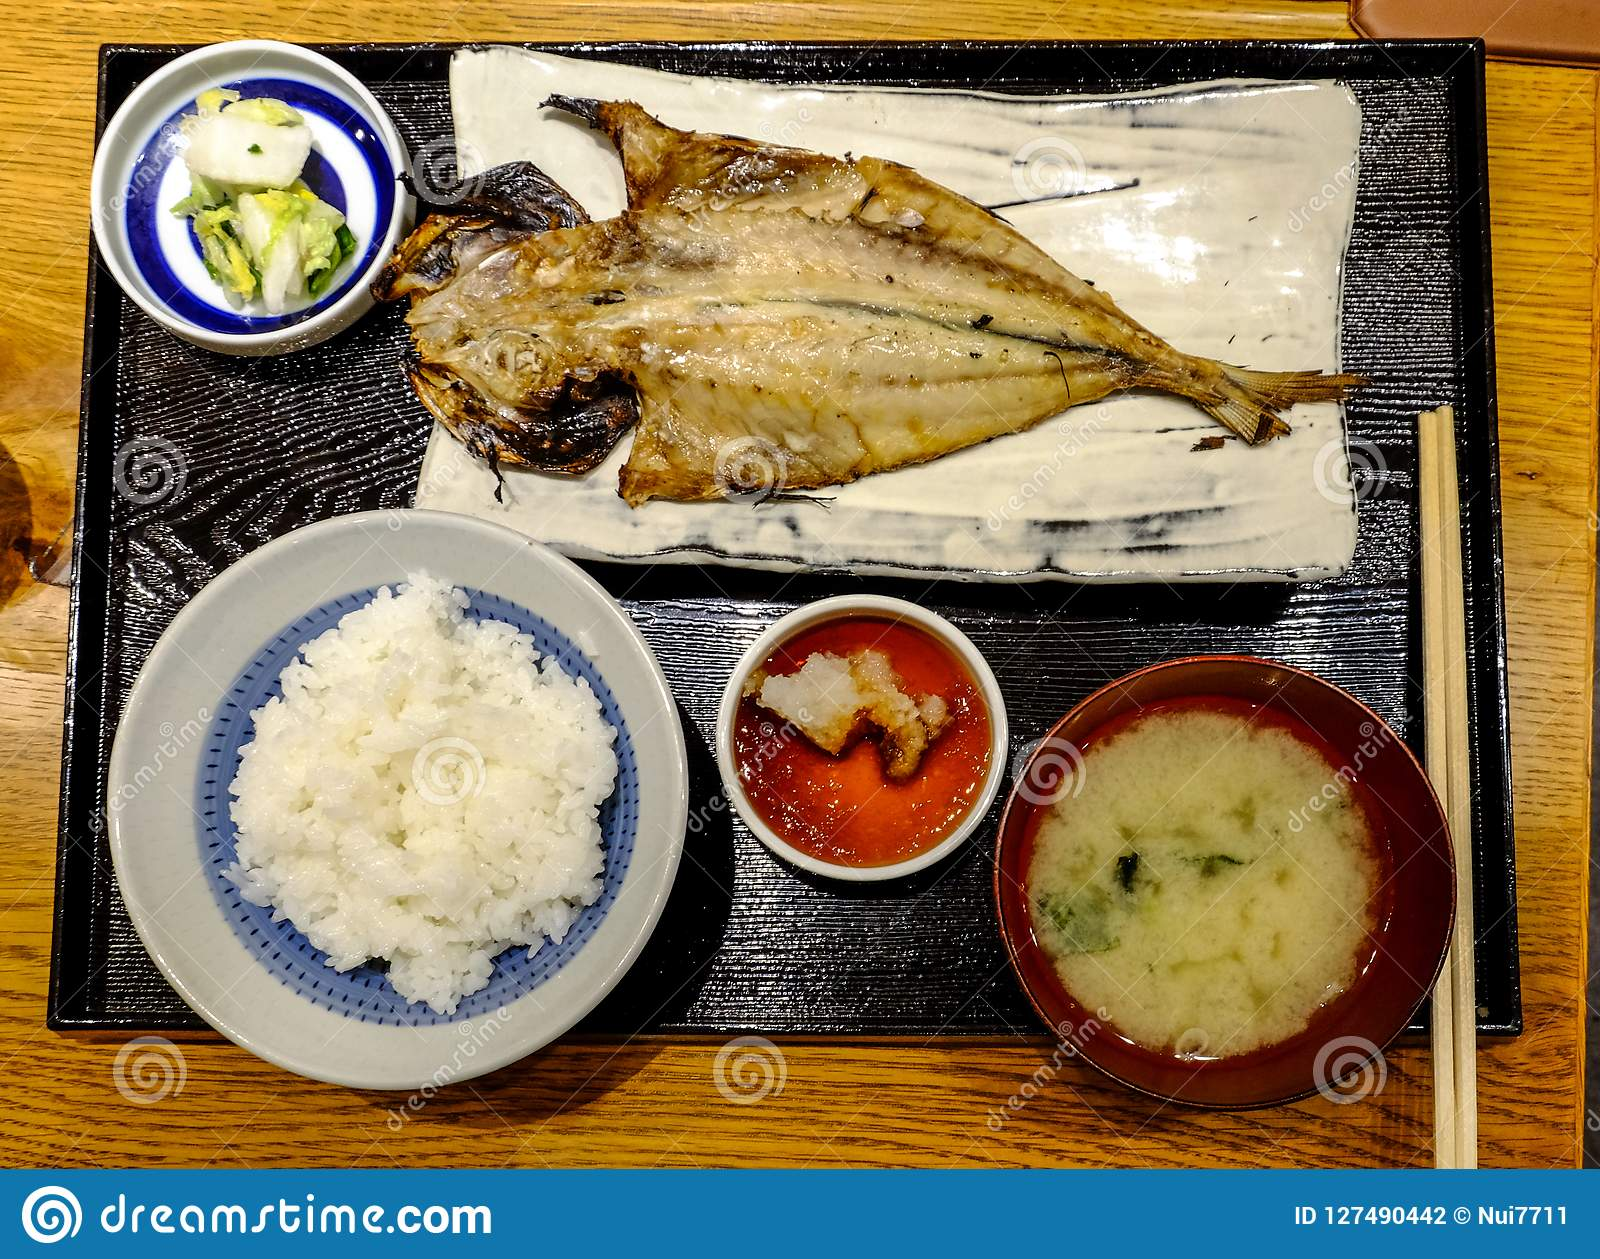 Japanese Food Set Grilled Fish With Rice Stock Photo Image Of Open Marine 127490442